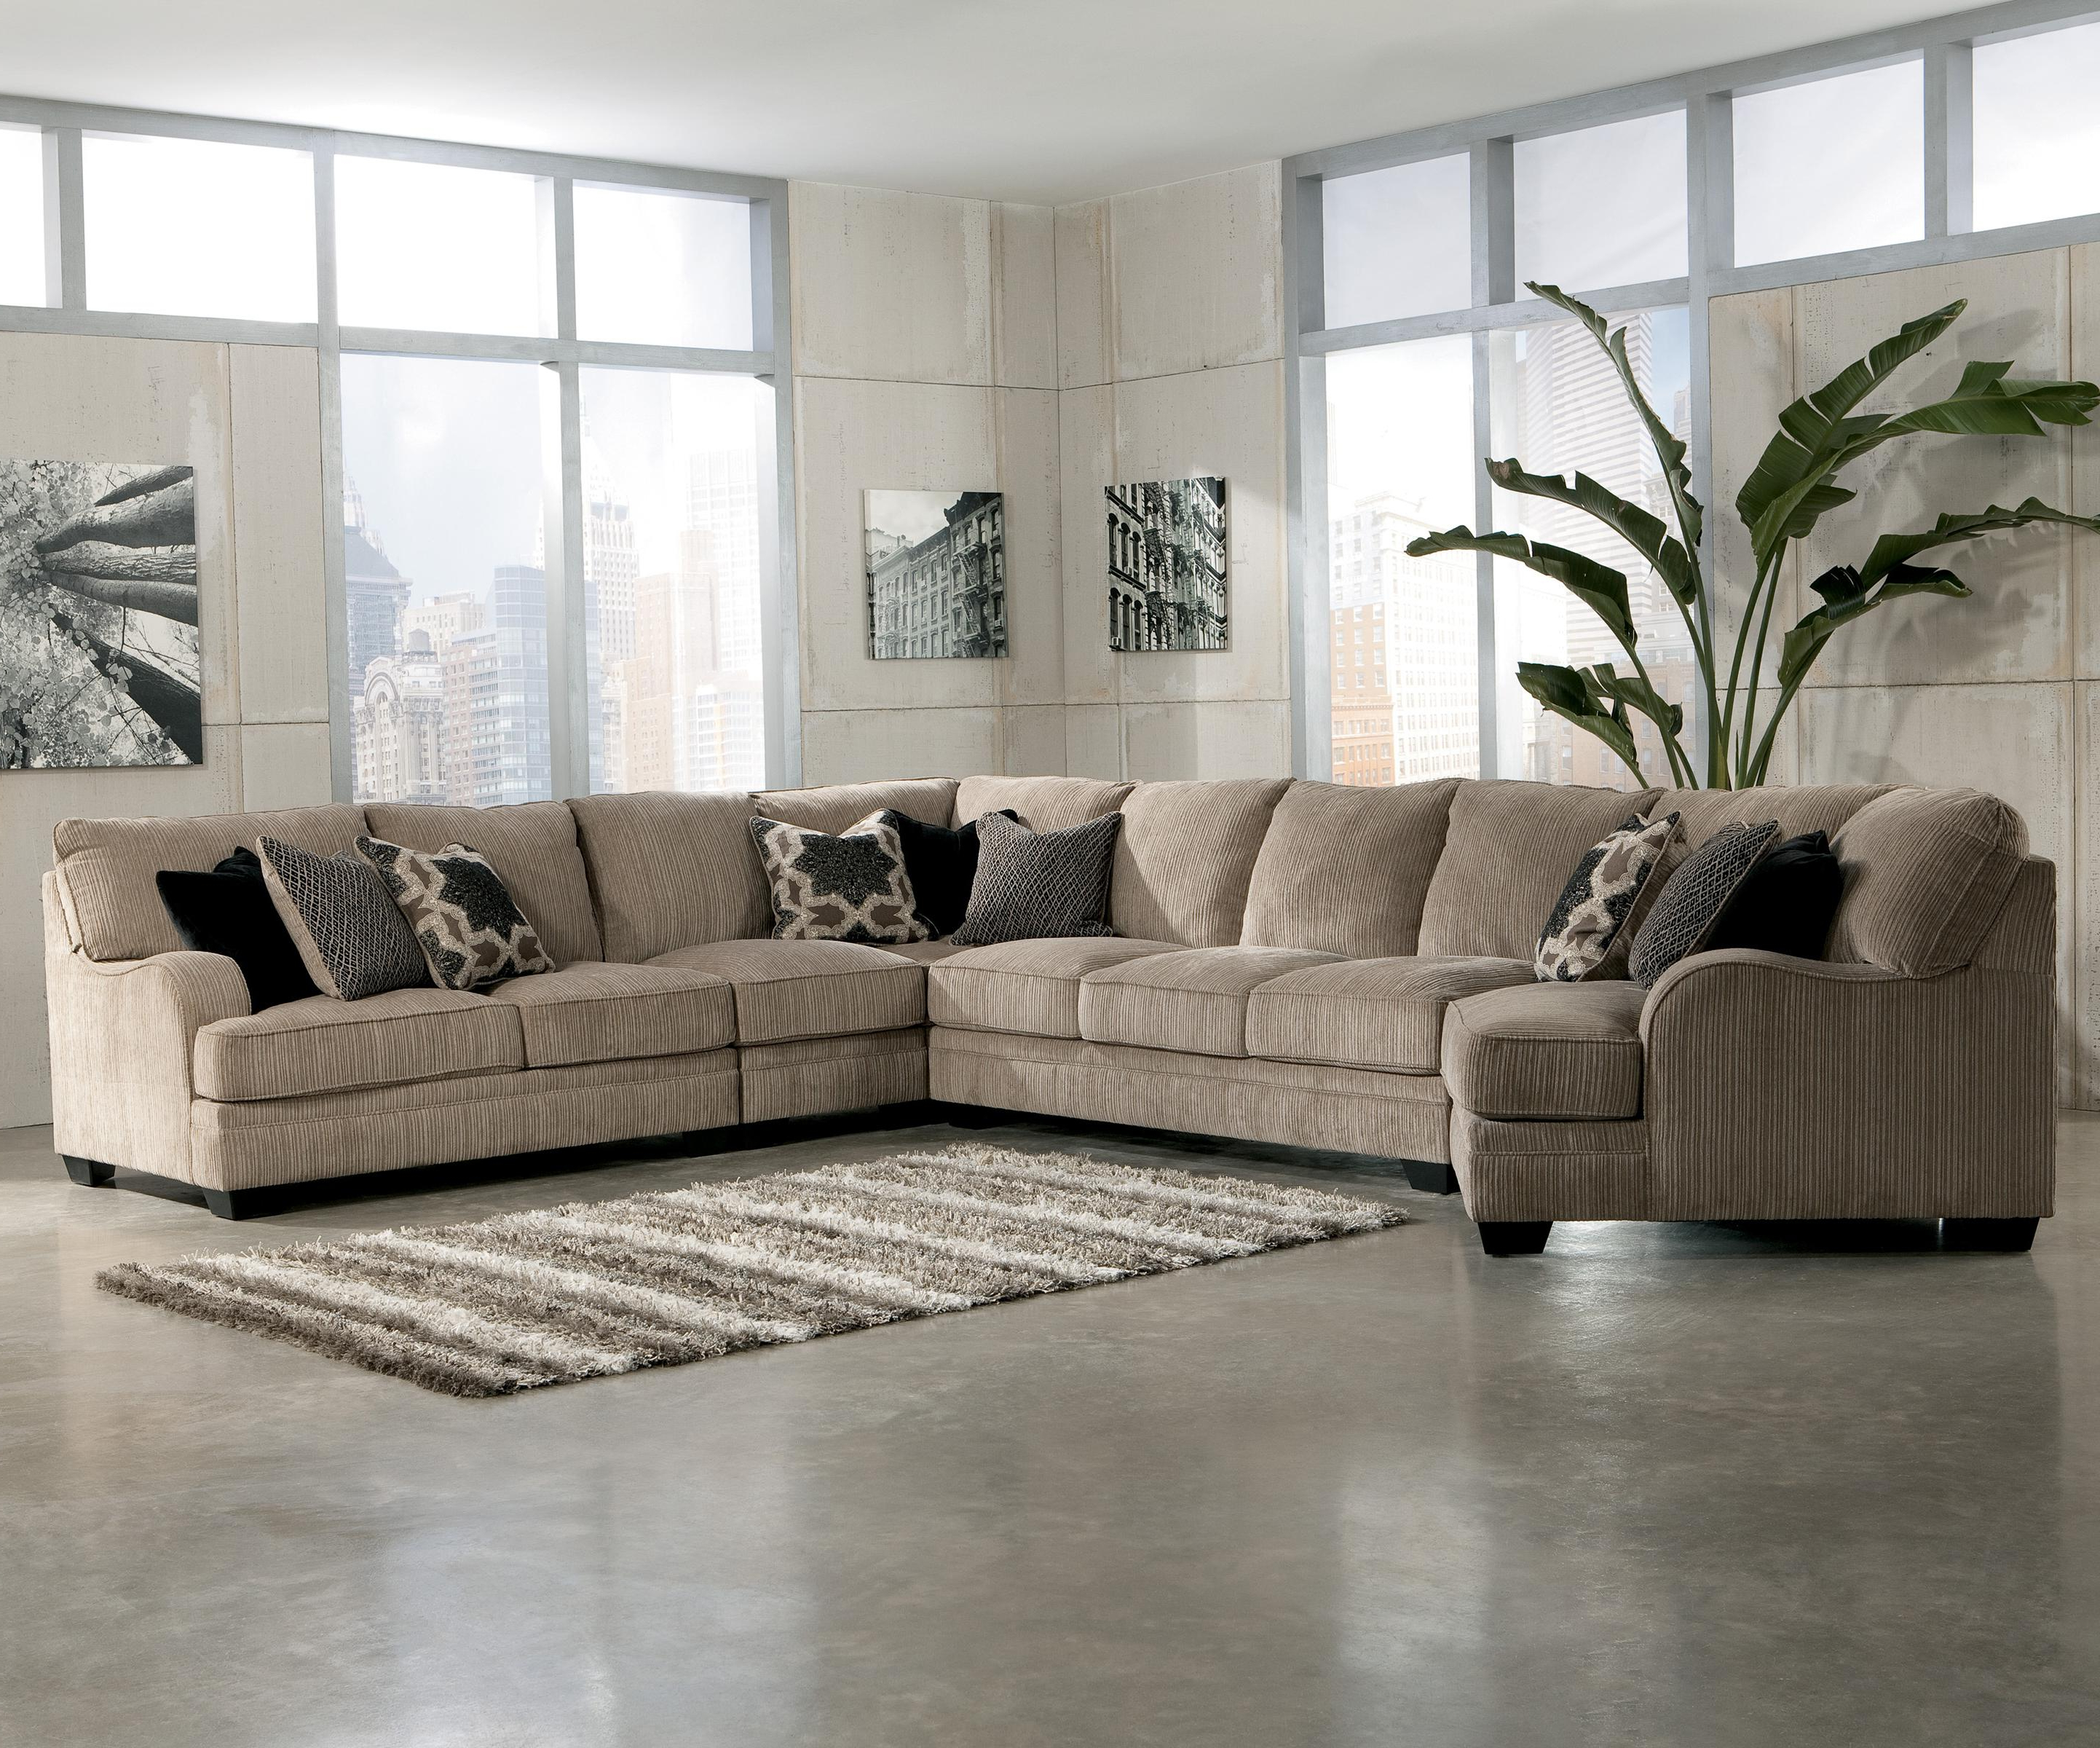 Trendy Norfolk Grey 6 Piece Sectionals With Raf Chaise Throughout Signature Designashley Katisha – Platinum 5 Piece Sectional Sofa (View 17 of 20)